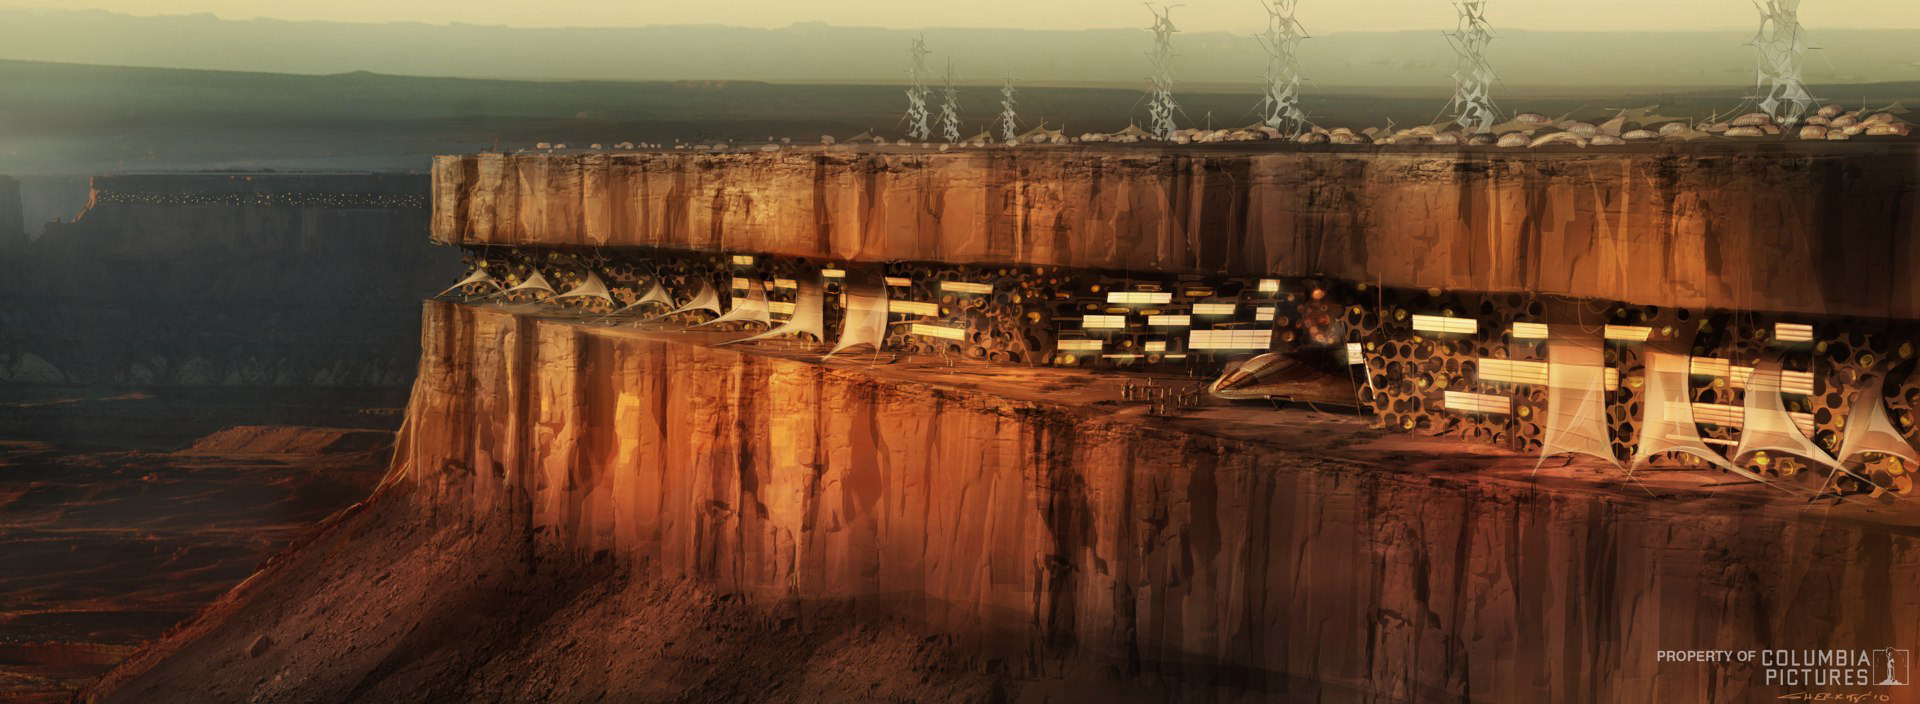 after earth concept art - photo #36